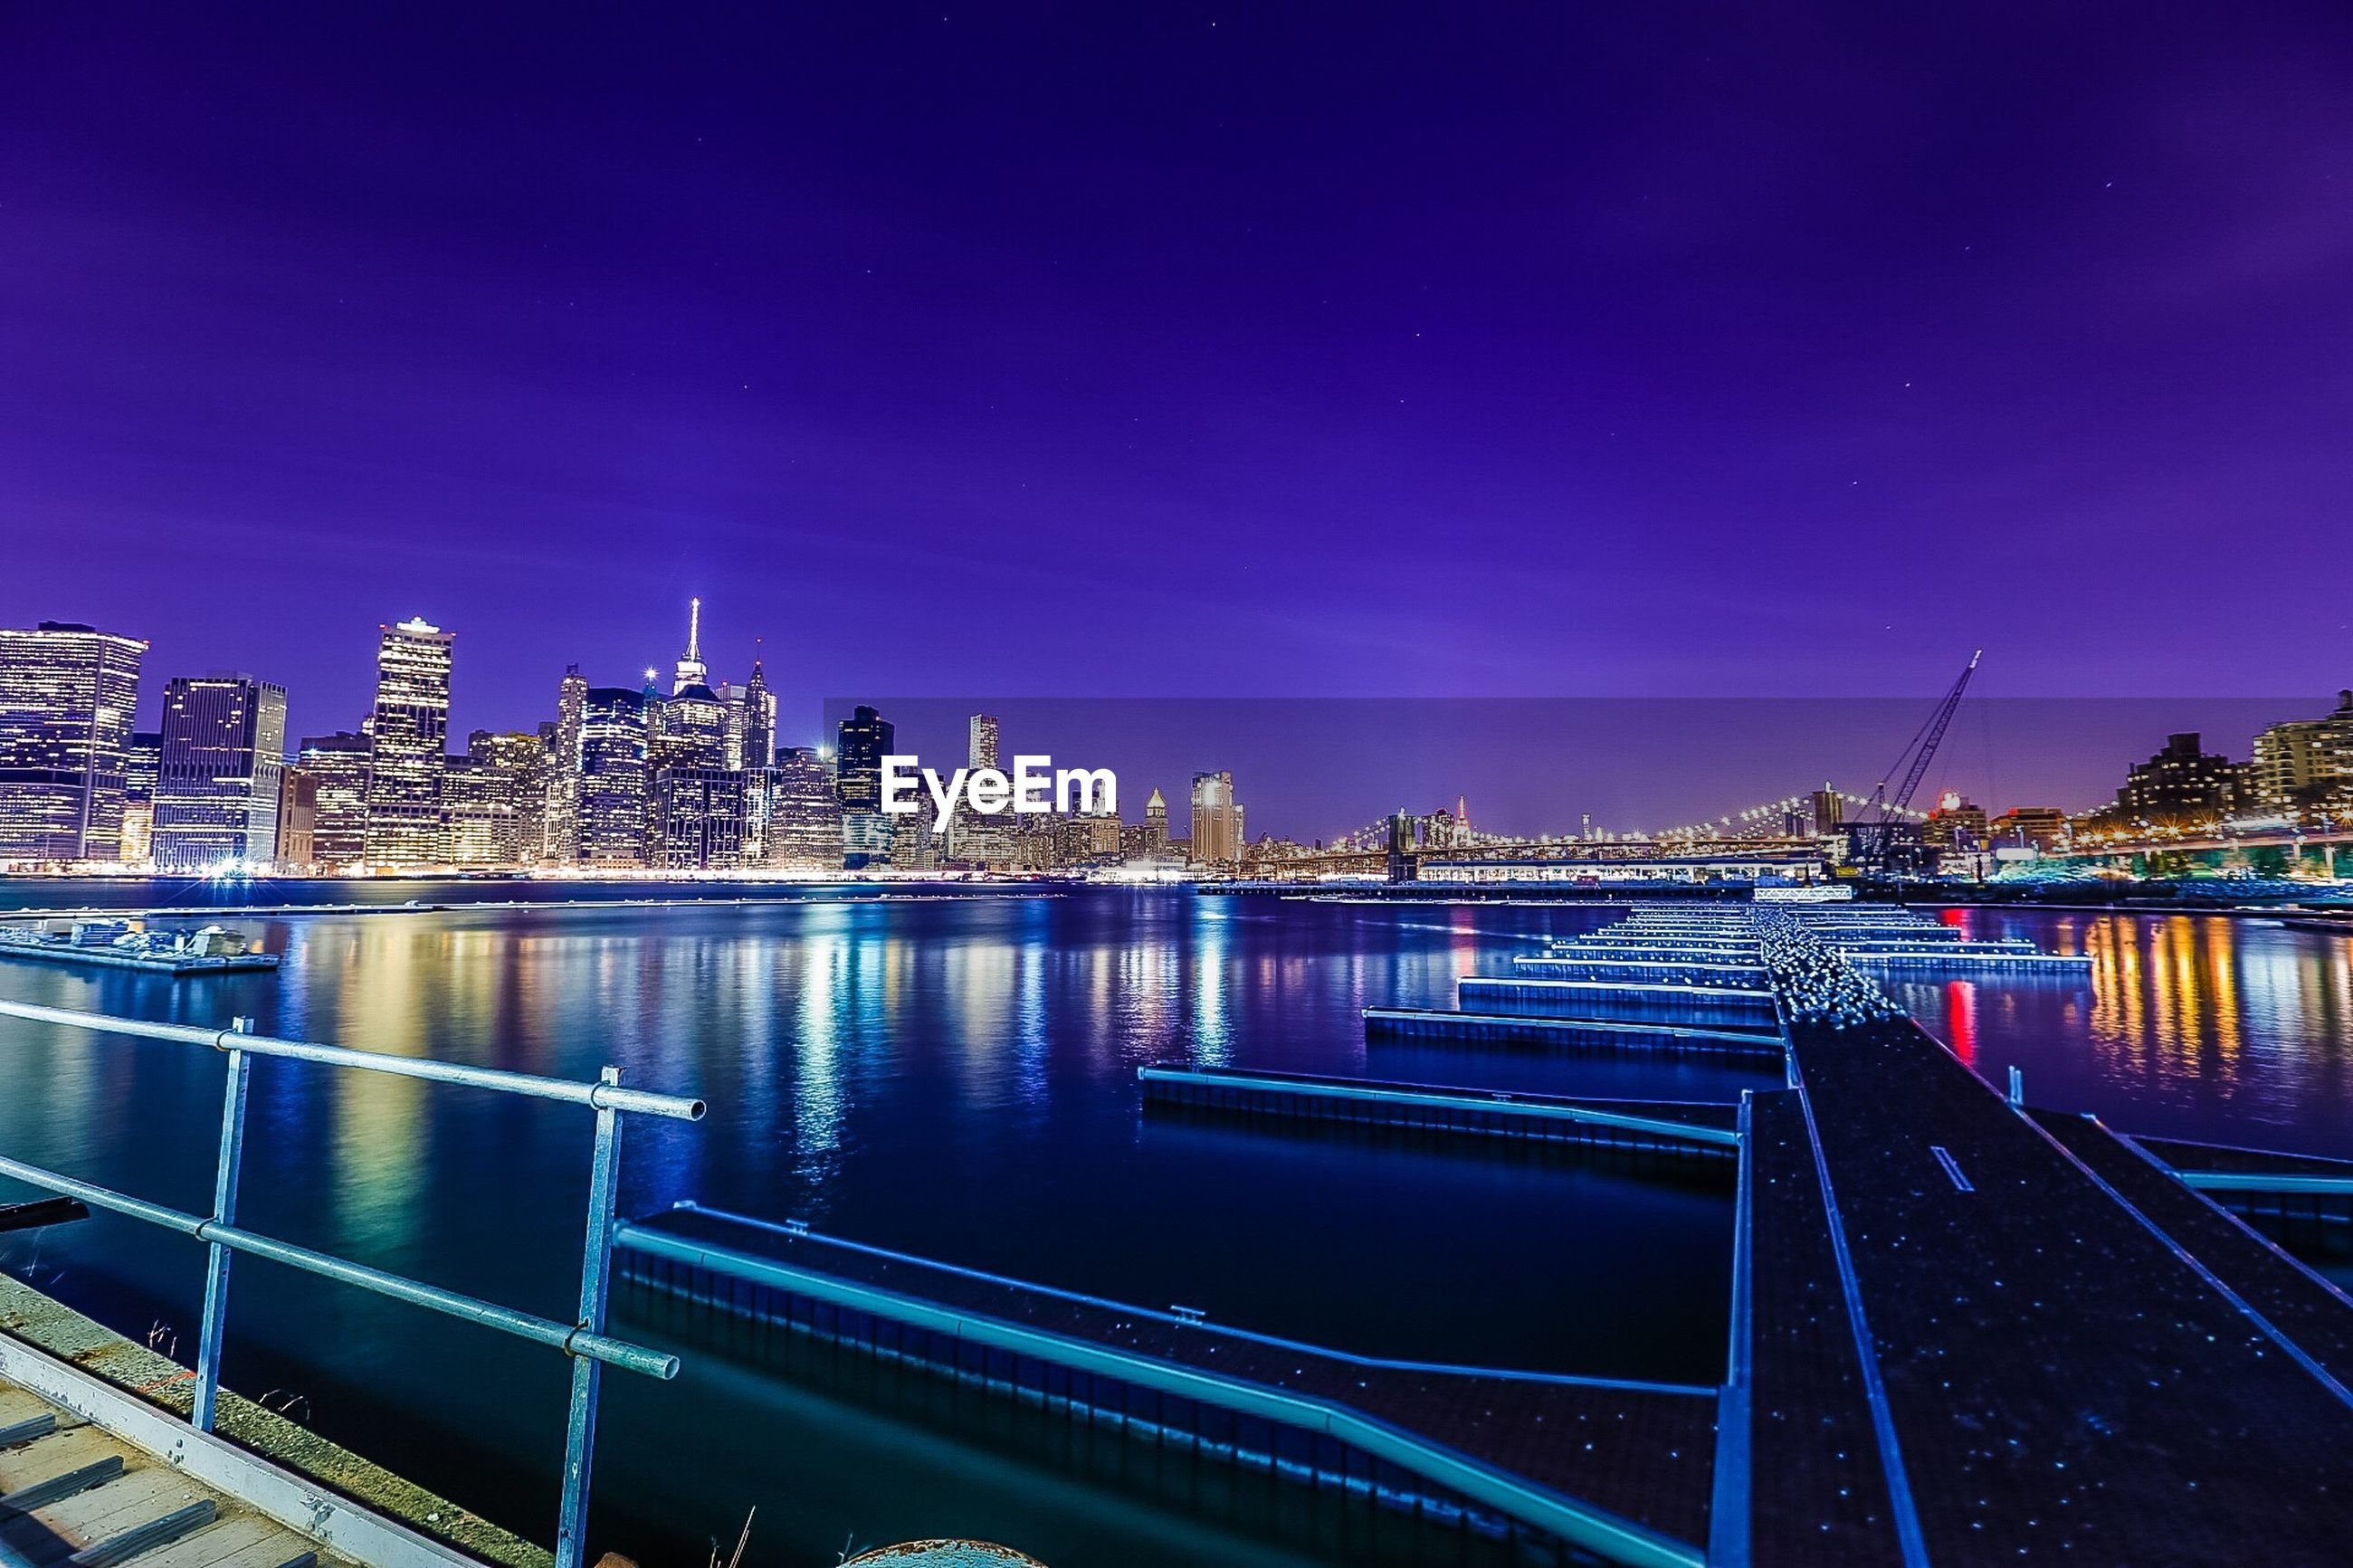 illuminated, night, architecture, building exterior, built structure, city, water, cityscape, river, blue, clear sky, railing, copy space, reflection, sky, modern, skyscraper, city life, lighting equipment, outdoors